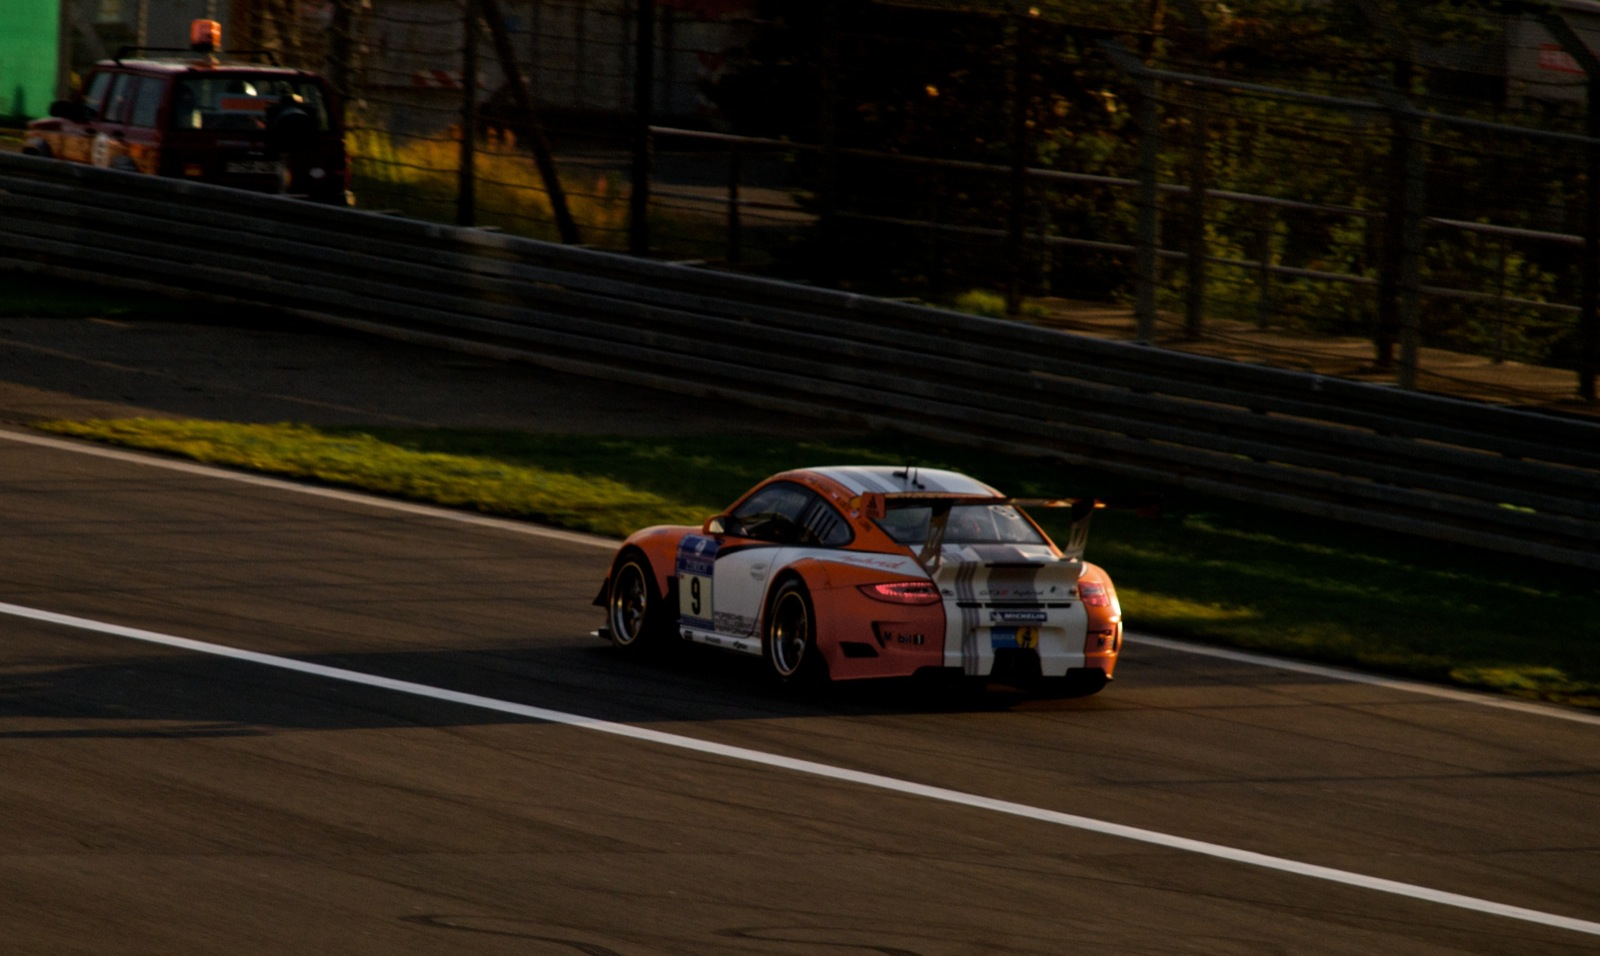 24h Nürburgring 2011 – Qualifying V